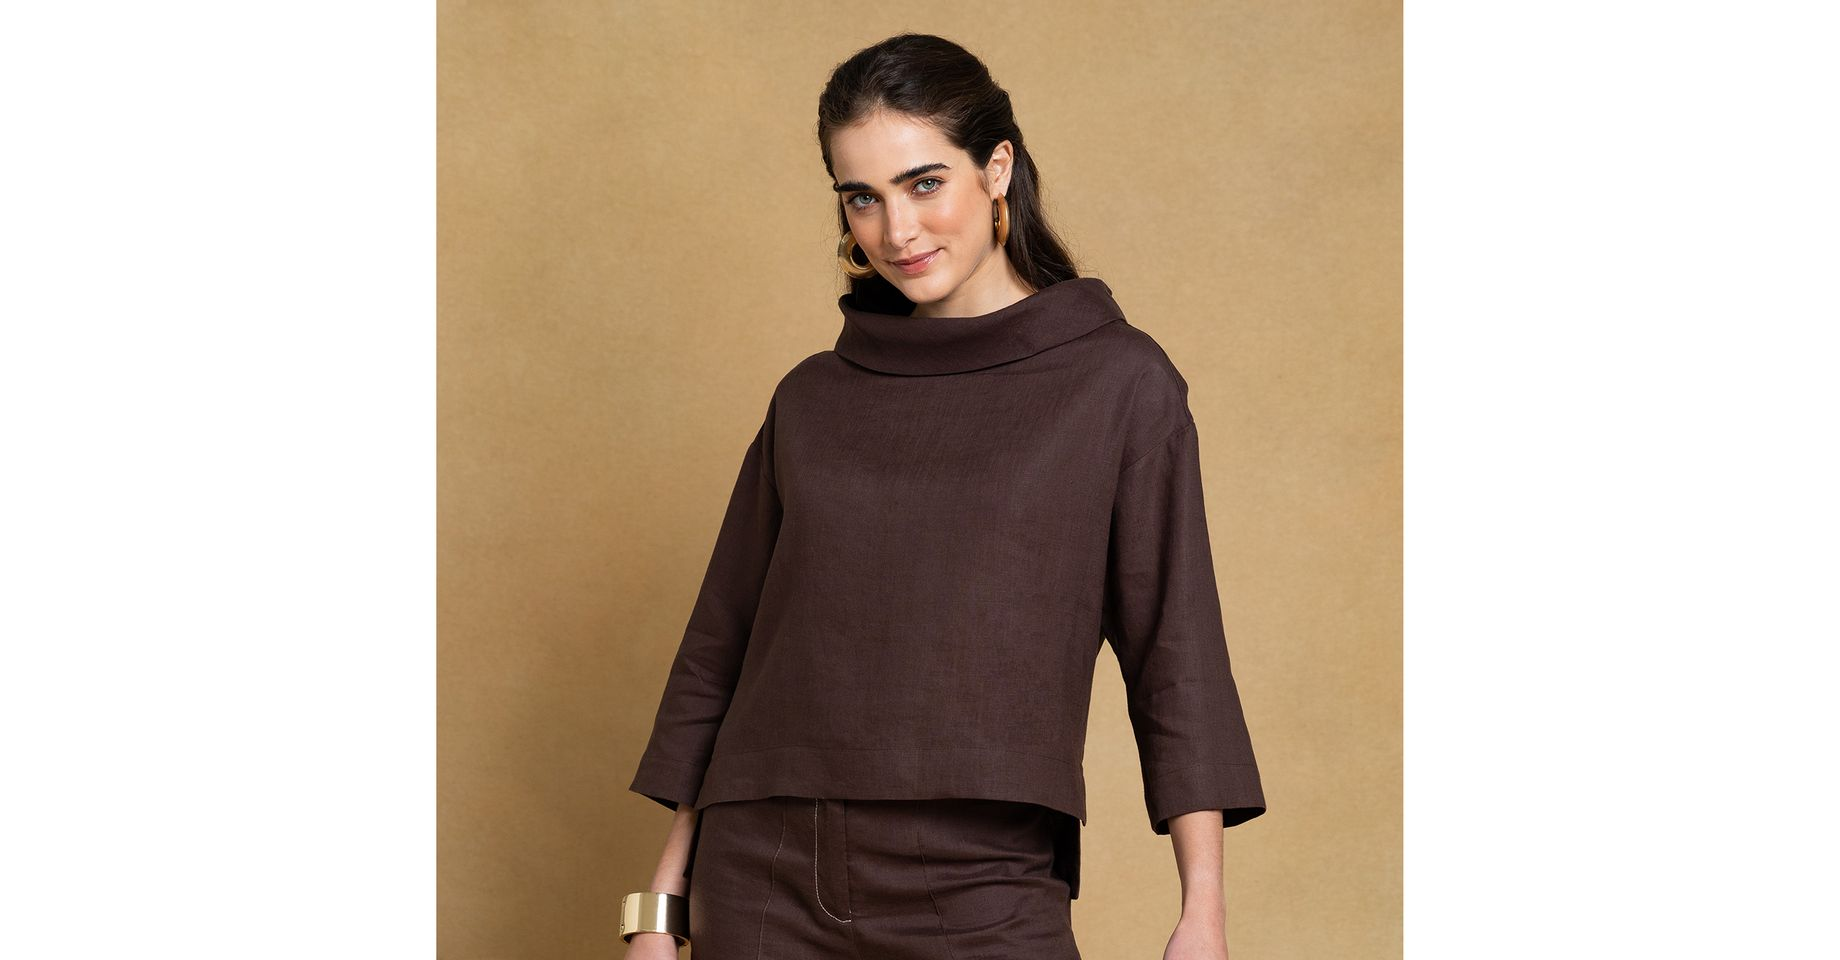 042602391_008_1-BLUSA-JACKIE-SION